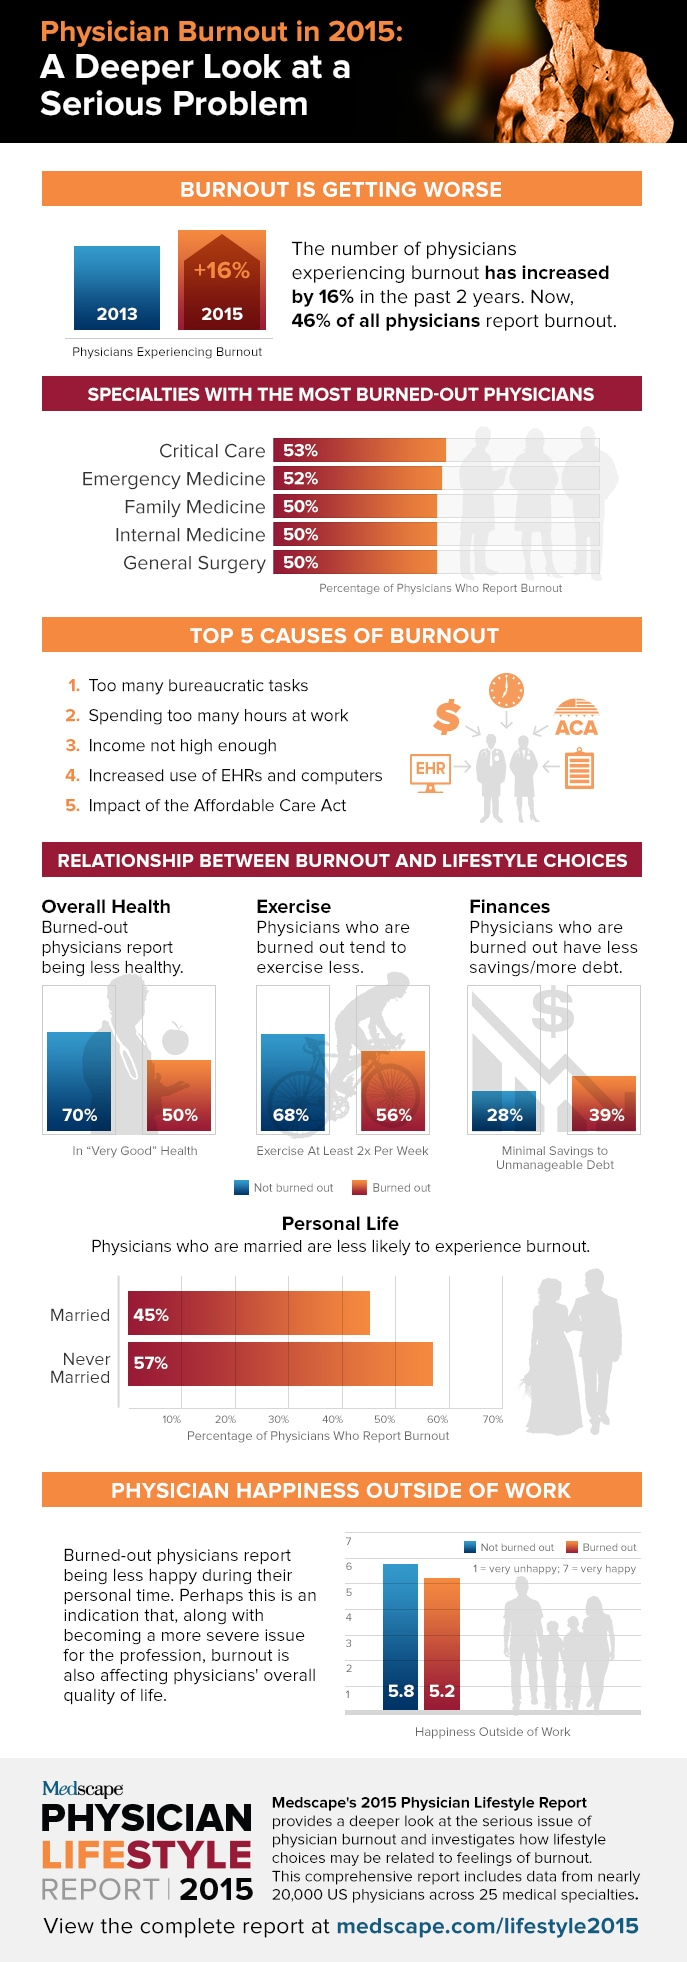 Medscape's Physician Lifestyle Report 2015